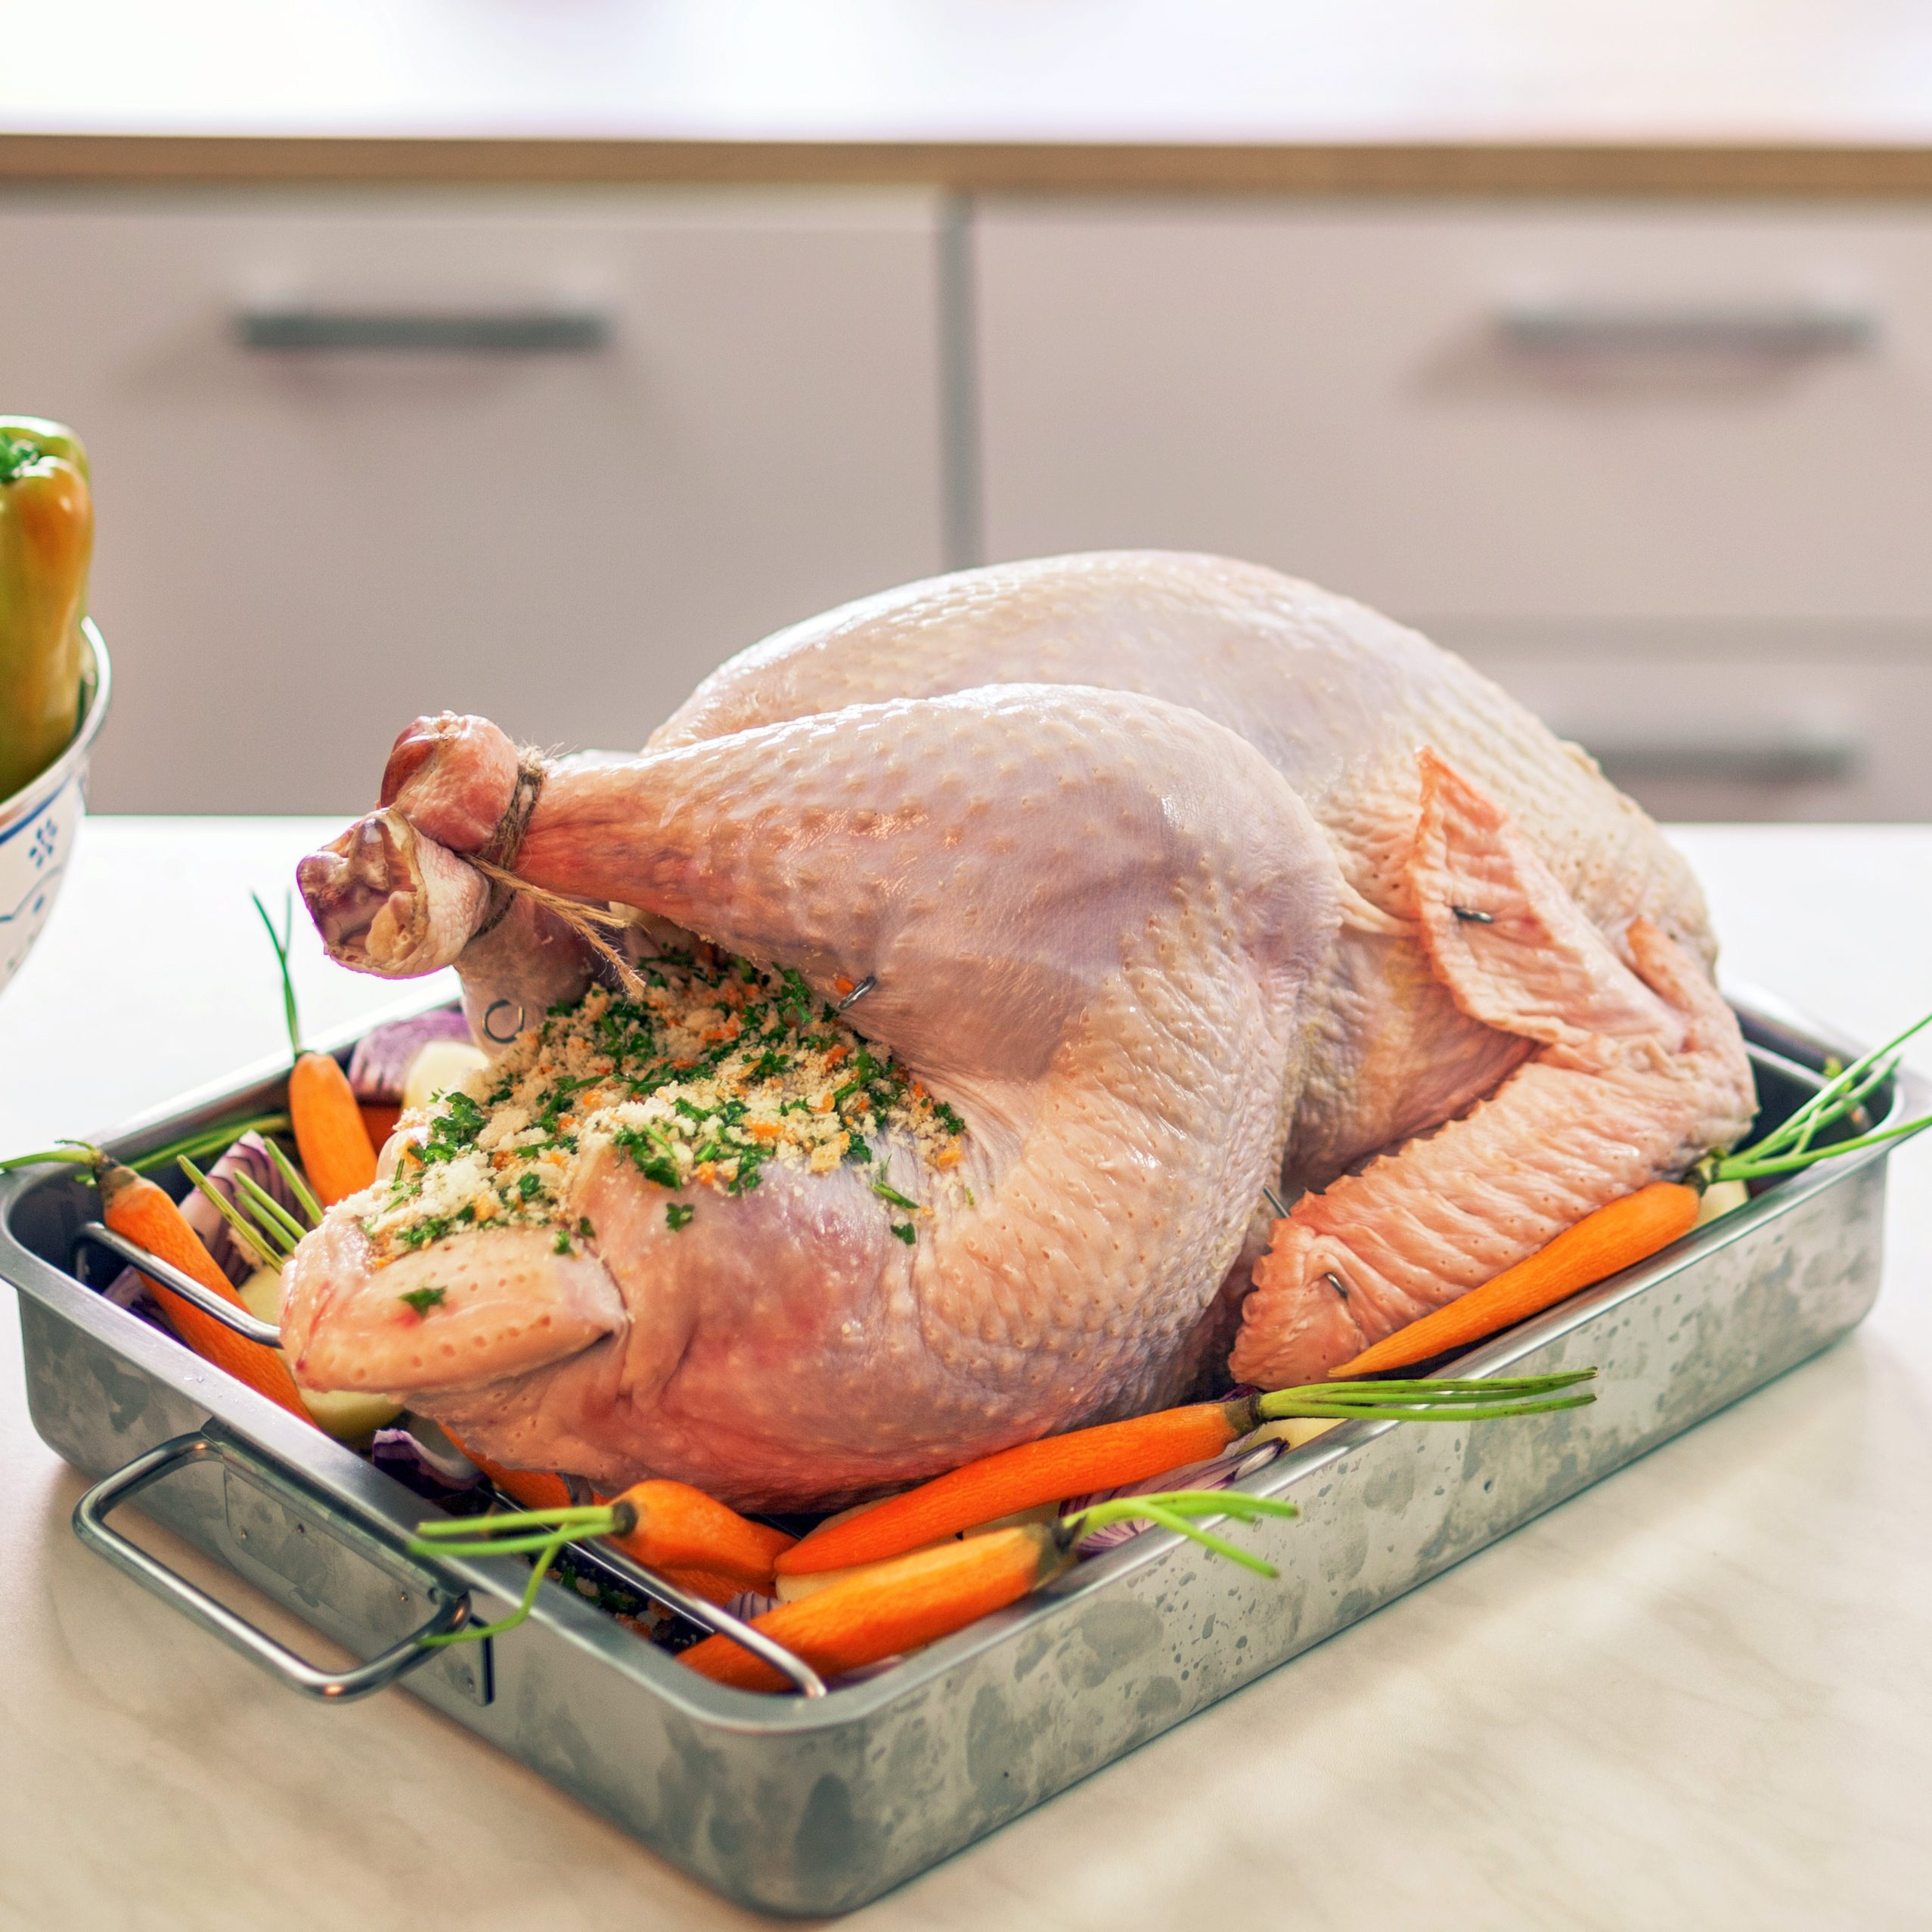 Raw turkey surrounded with side dishes in baking sheet ready to be prepared for Holidays